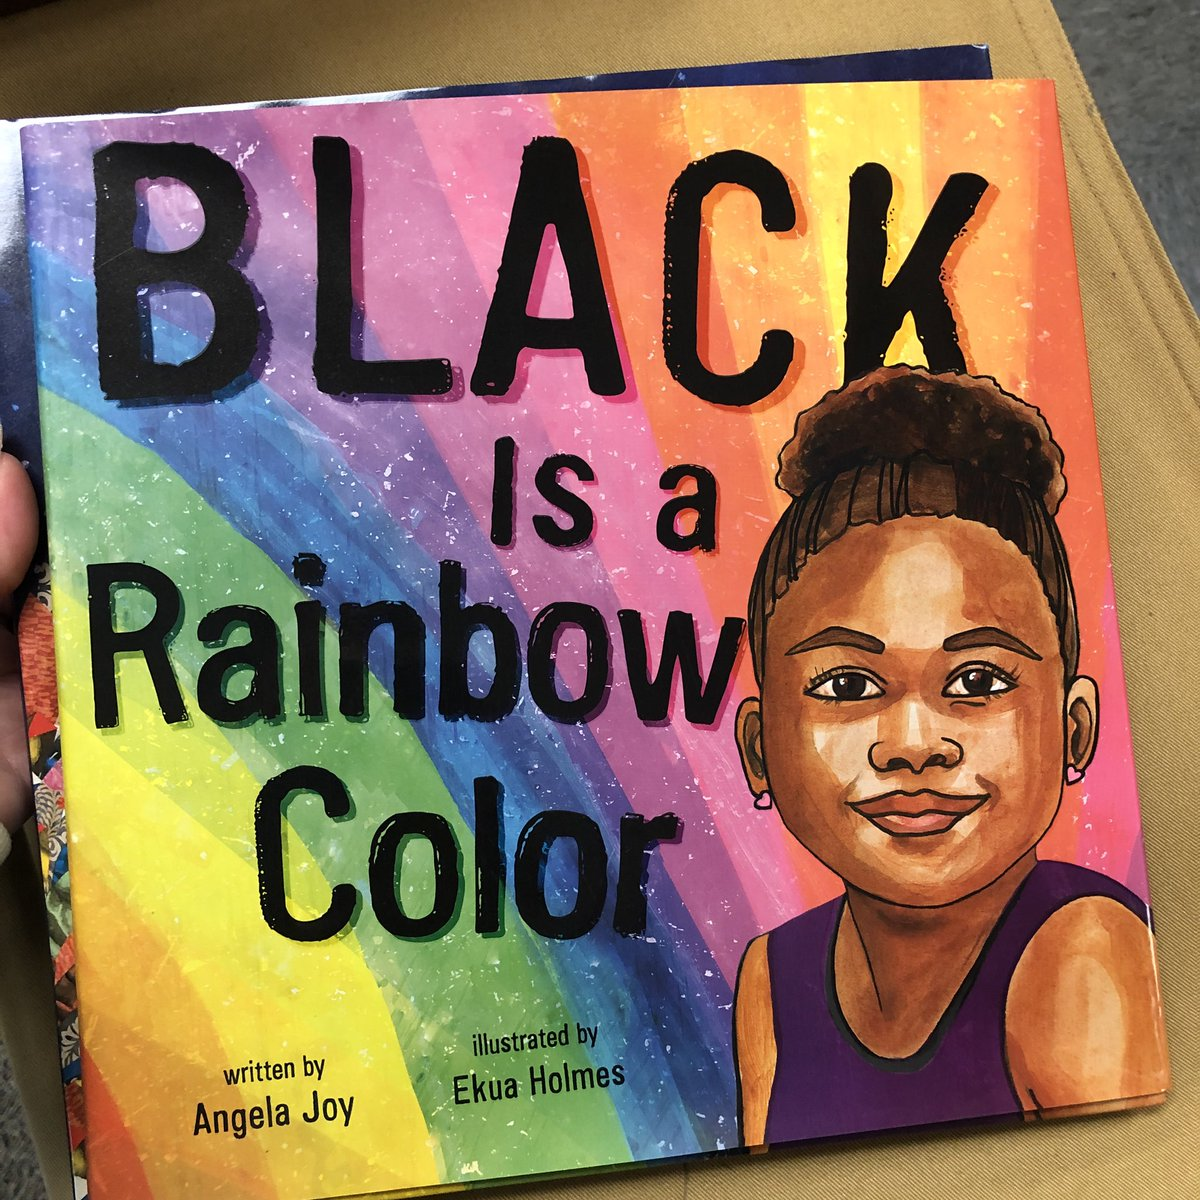 Today, to celebrate #MLKDay, I read Angela Joy's Black is a Rainbow Color. This celebrates that Black is not about the color of your skin, but is about the rainbow of things that make up the culture. #reaganrays #1LISD